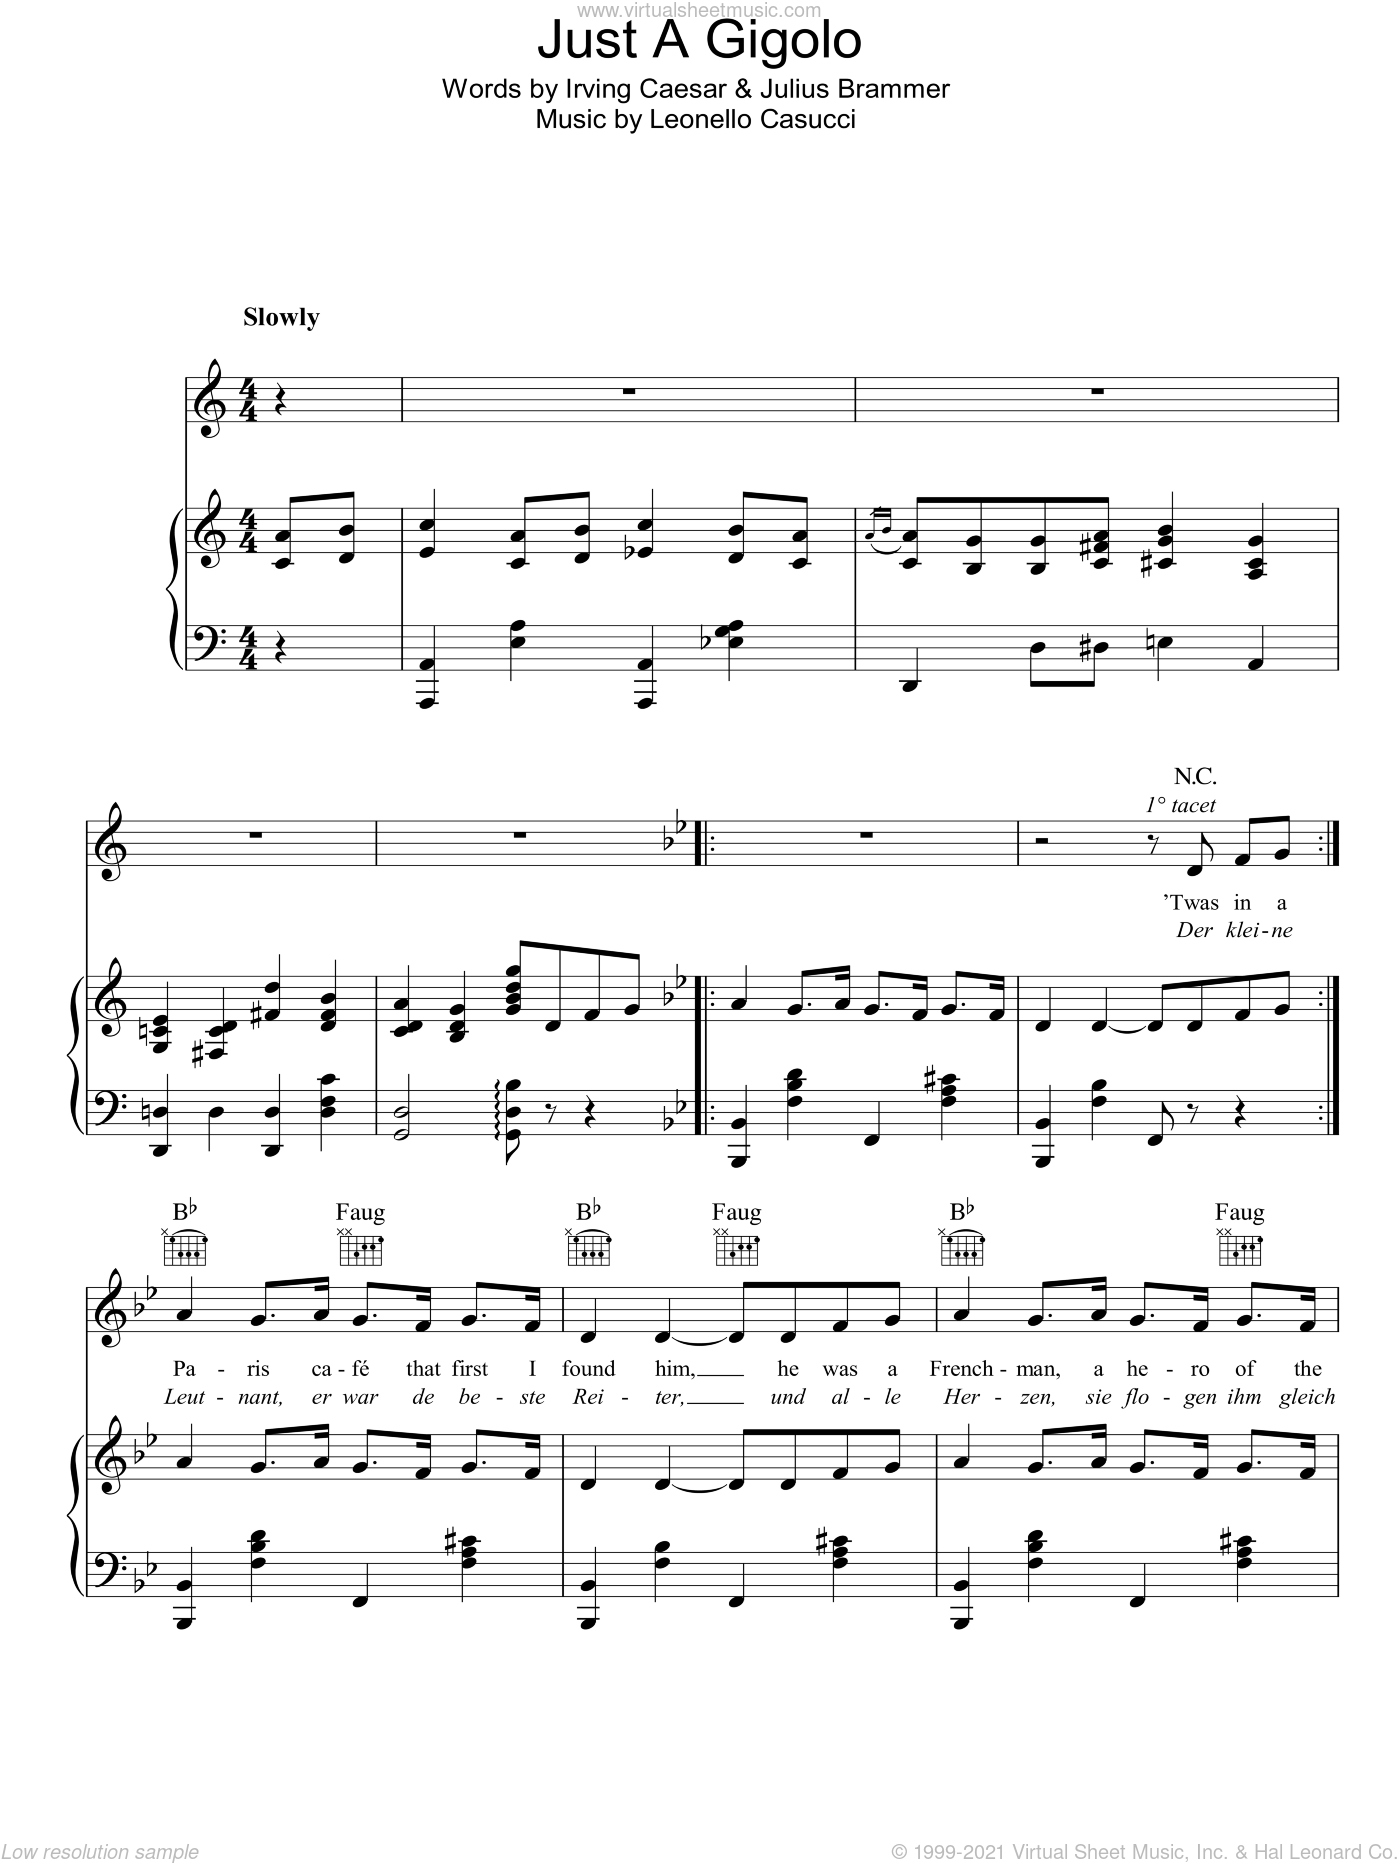 Just A Gigolo sheet music for voice, piano or guitar by Leonello Casucci